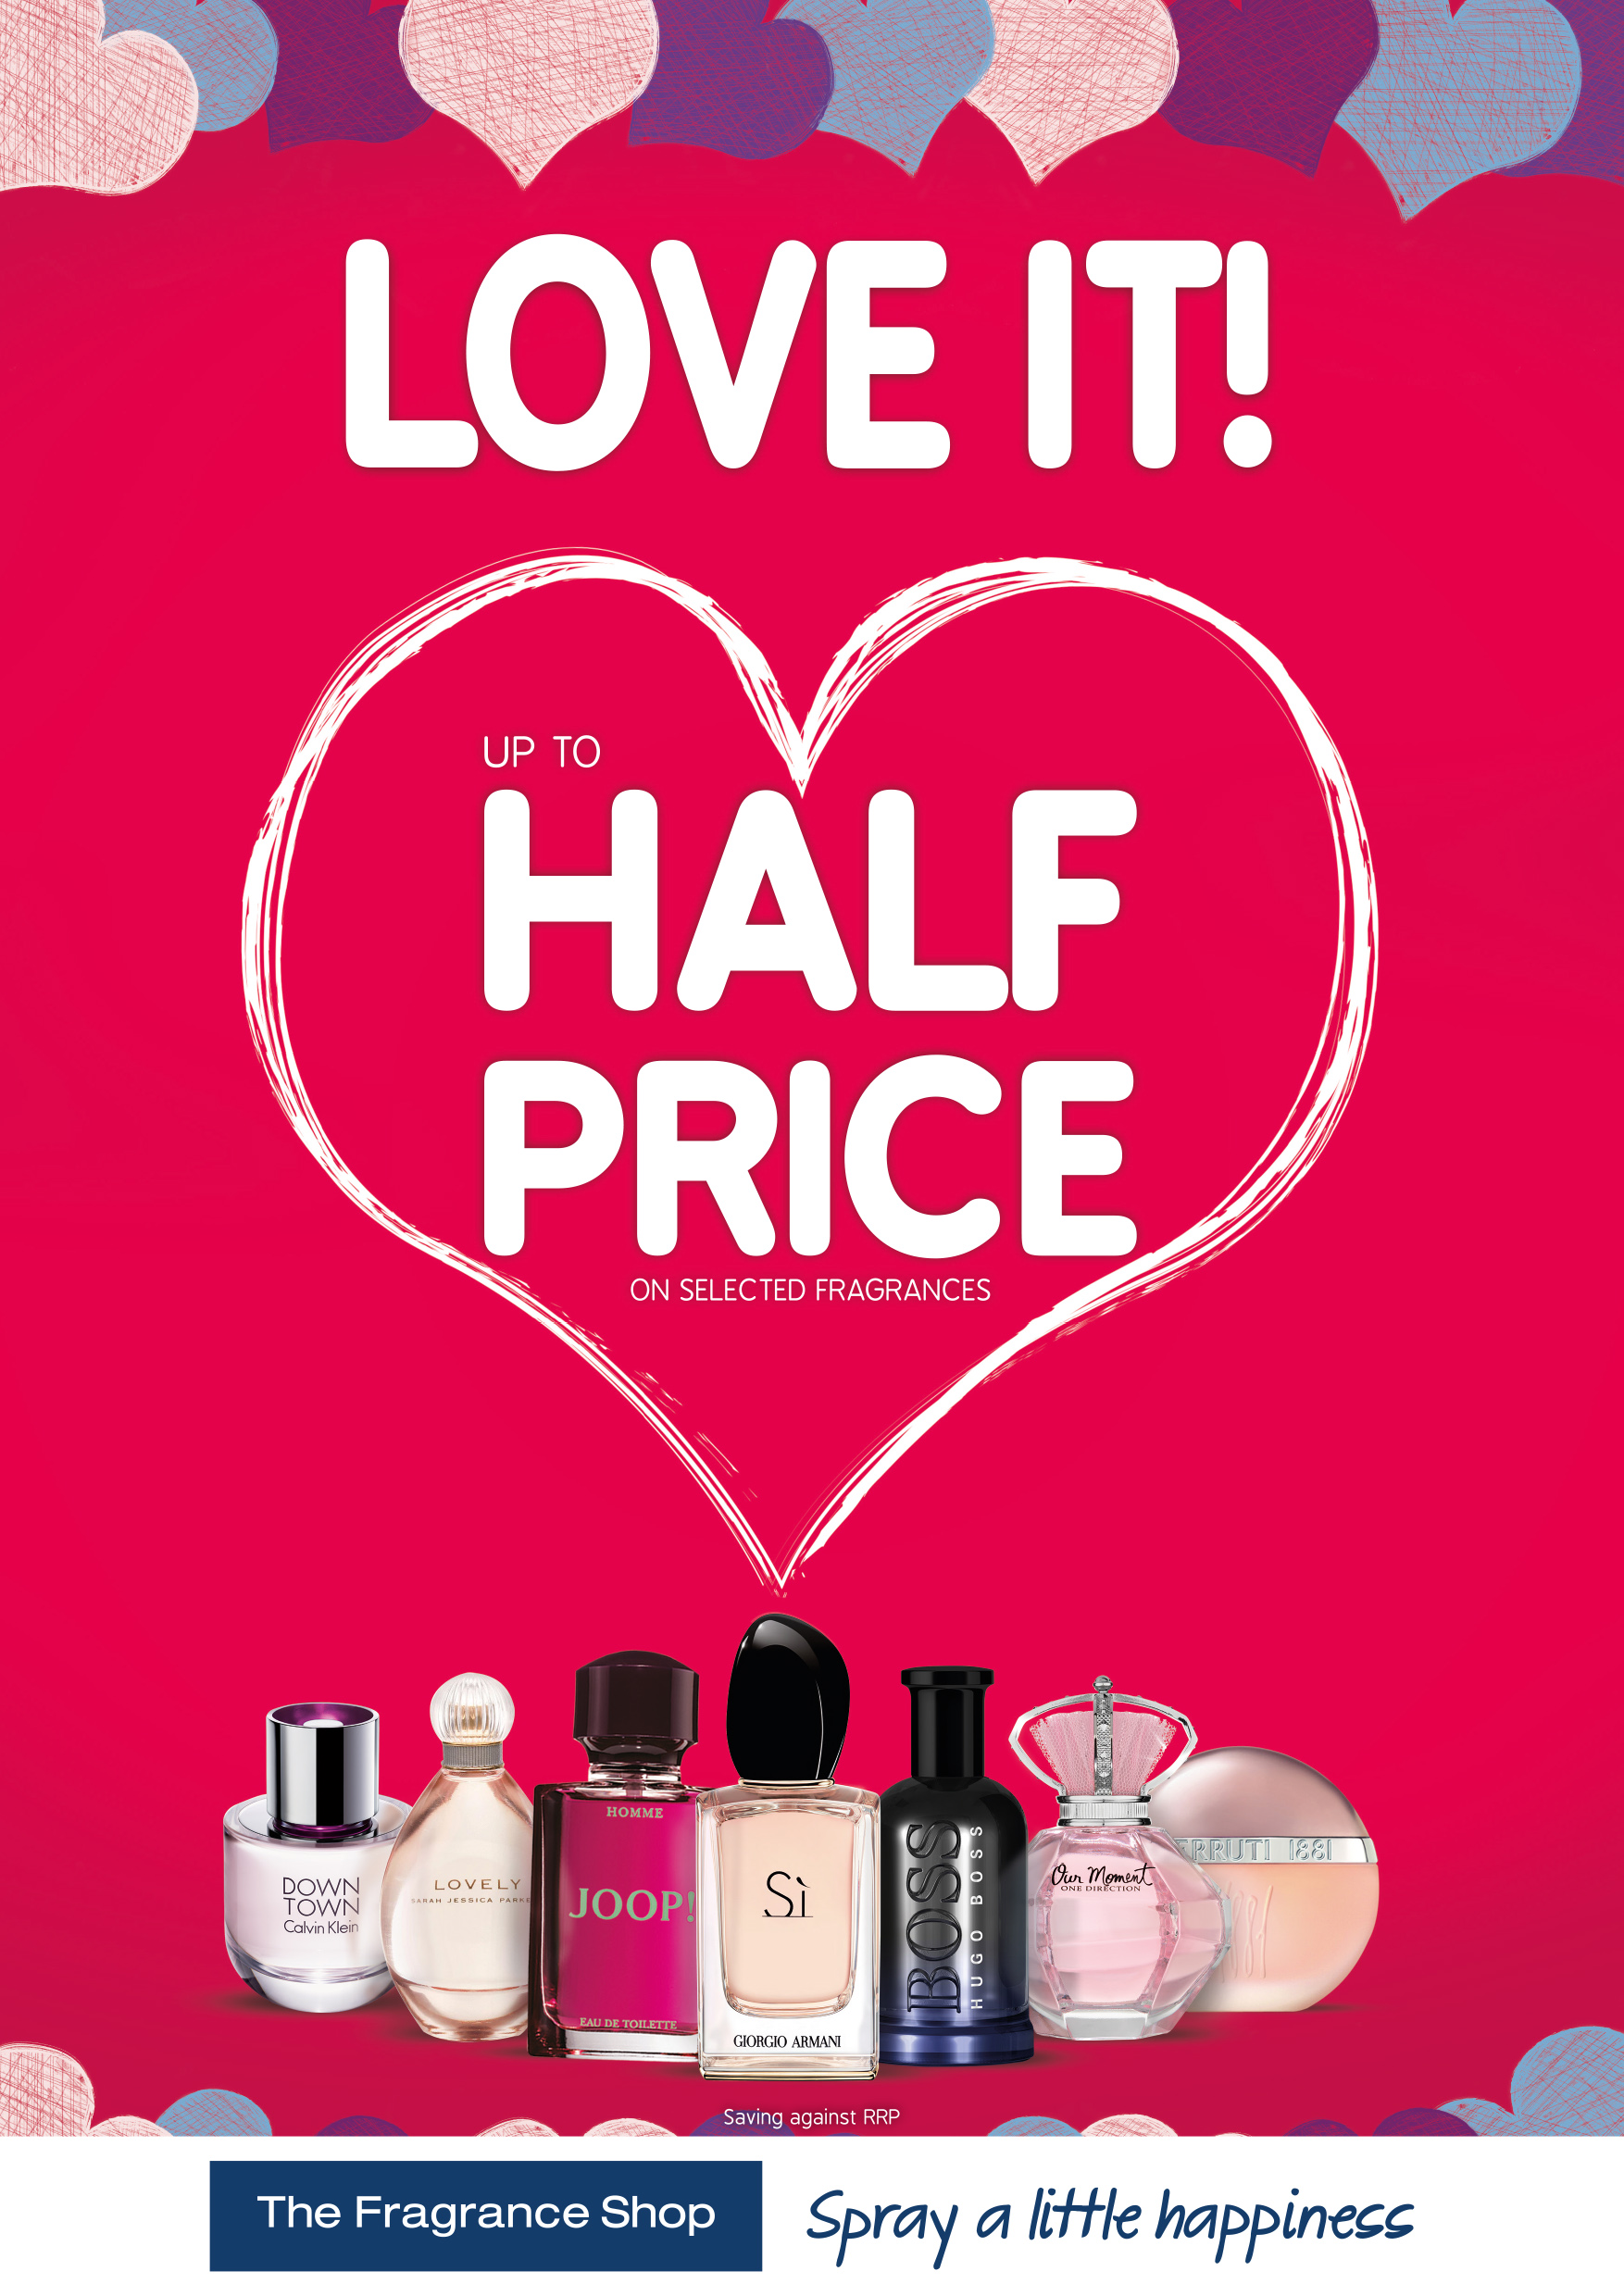 From Monday 3rd February – Valentine's at The Fragrance Shop – Love It